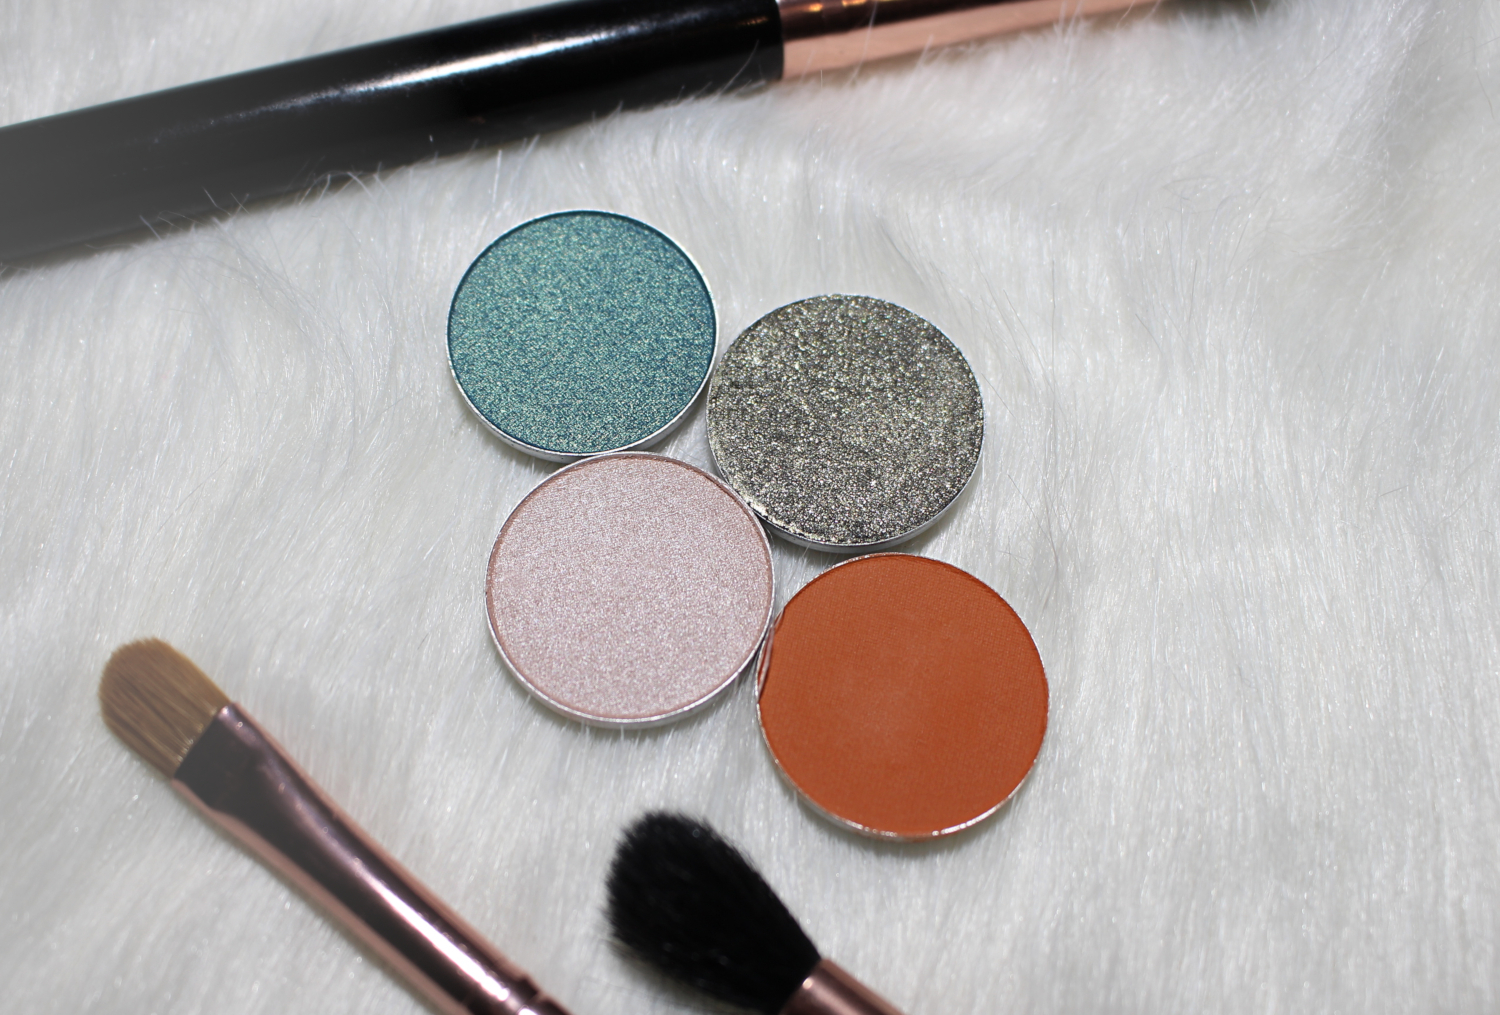 four single eyeshadows by mac cosmetics on the fur